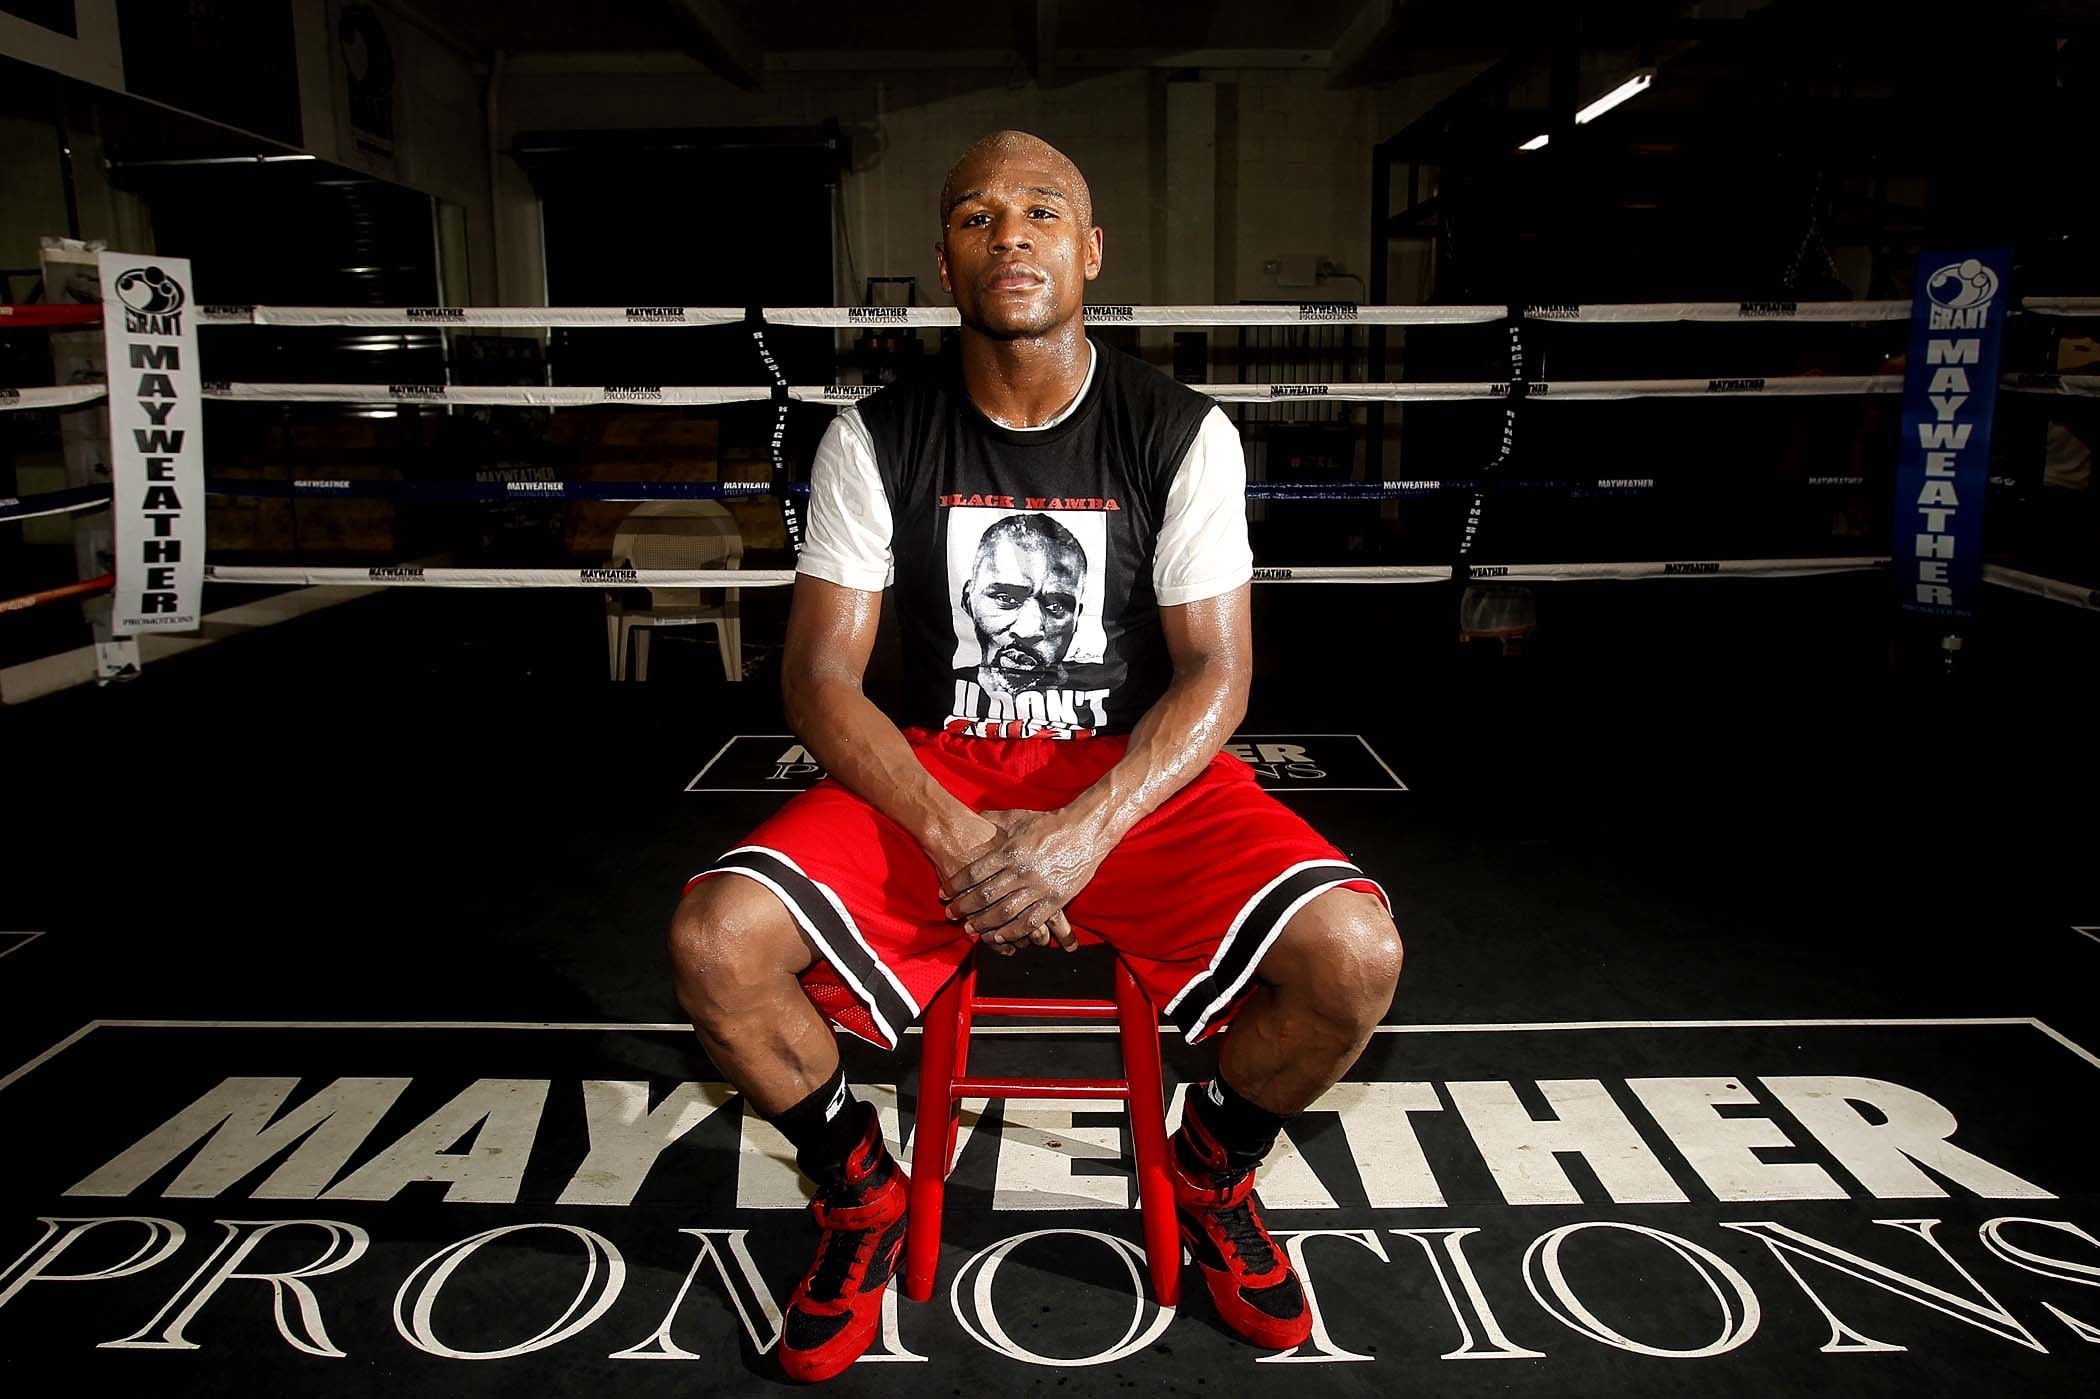 Floyd Mayweather's Net Worth in 2019 - Floyd Mayweather's net worth is at least $560 million